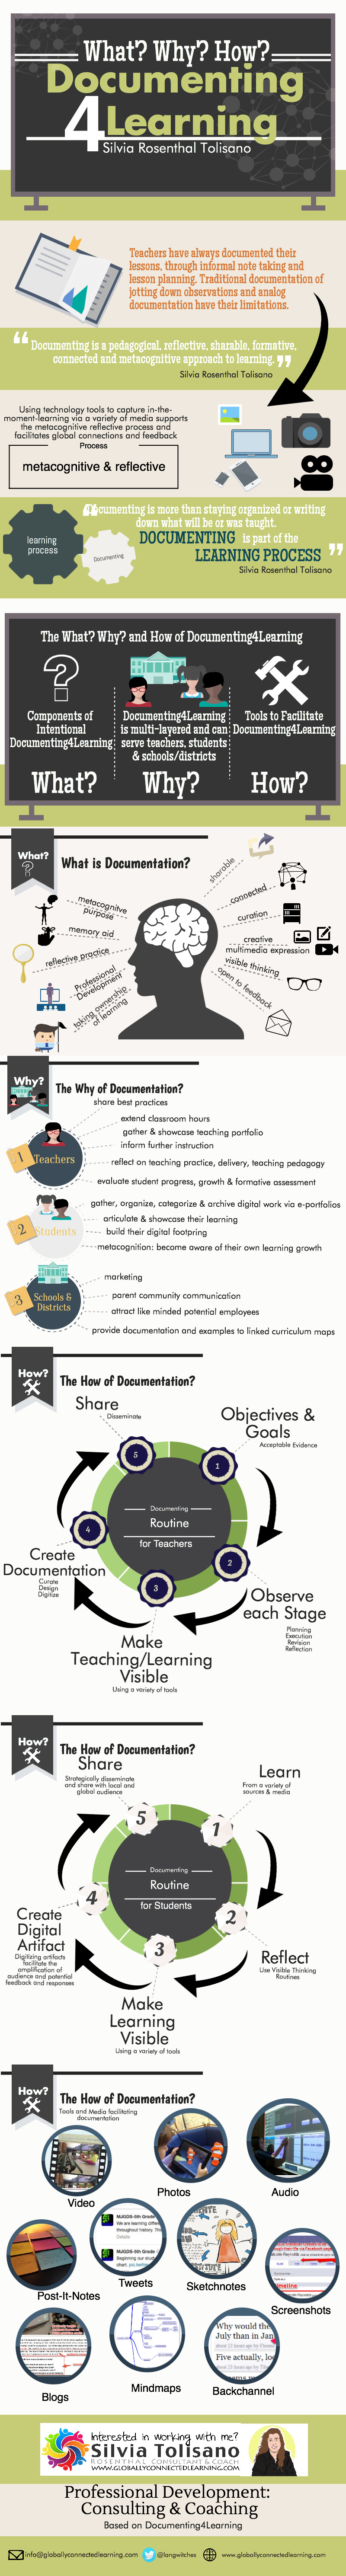 Infographic on Documenting 4 Learning